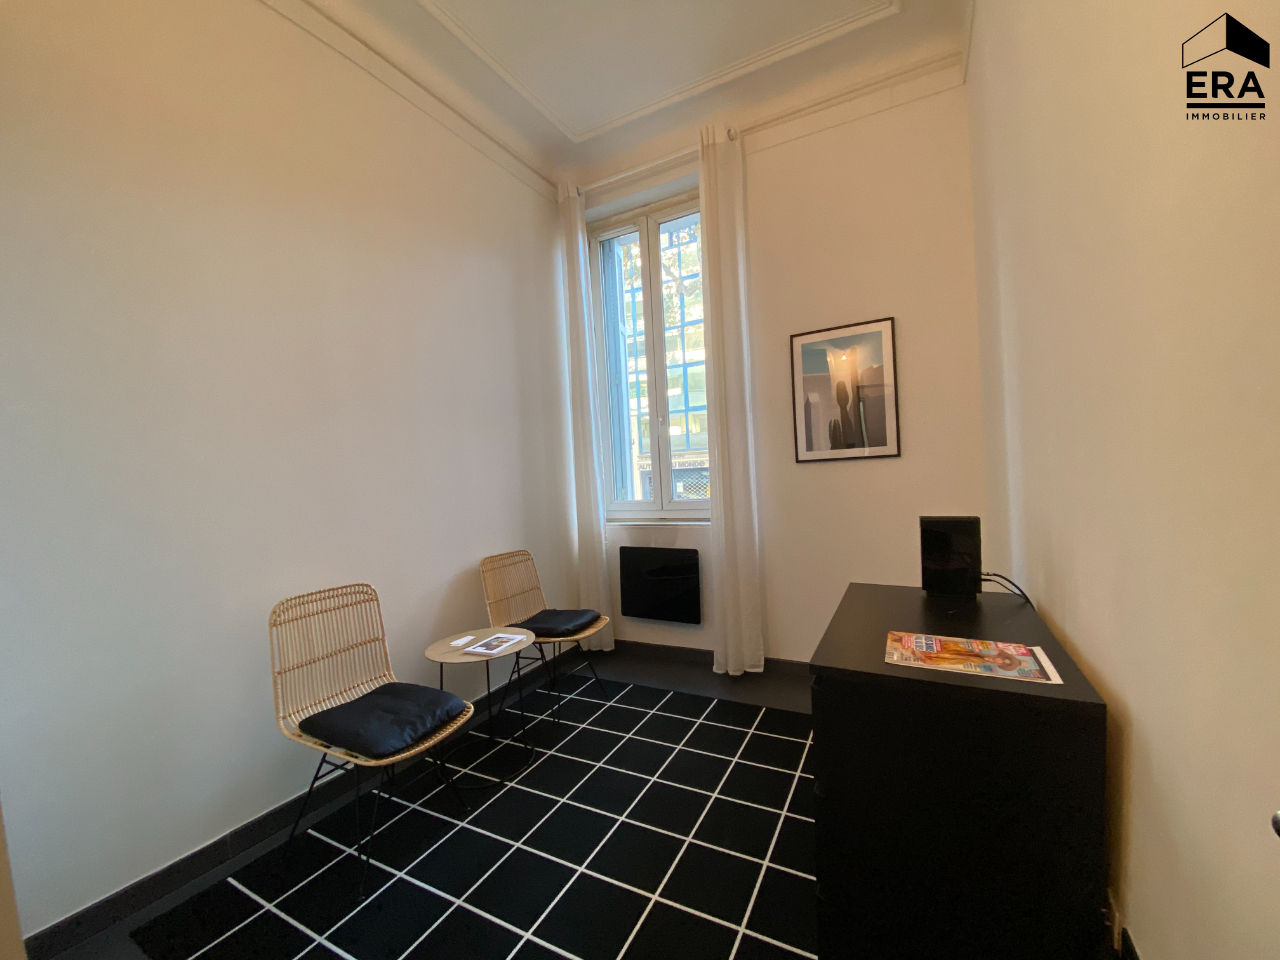 A LOUER APPARTEMENT T 2 13008 MARSEILLE CARRE D'OR